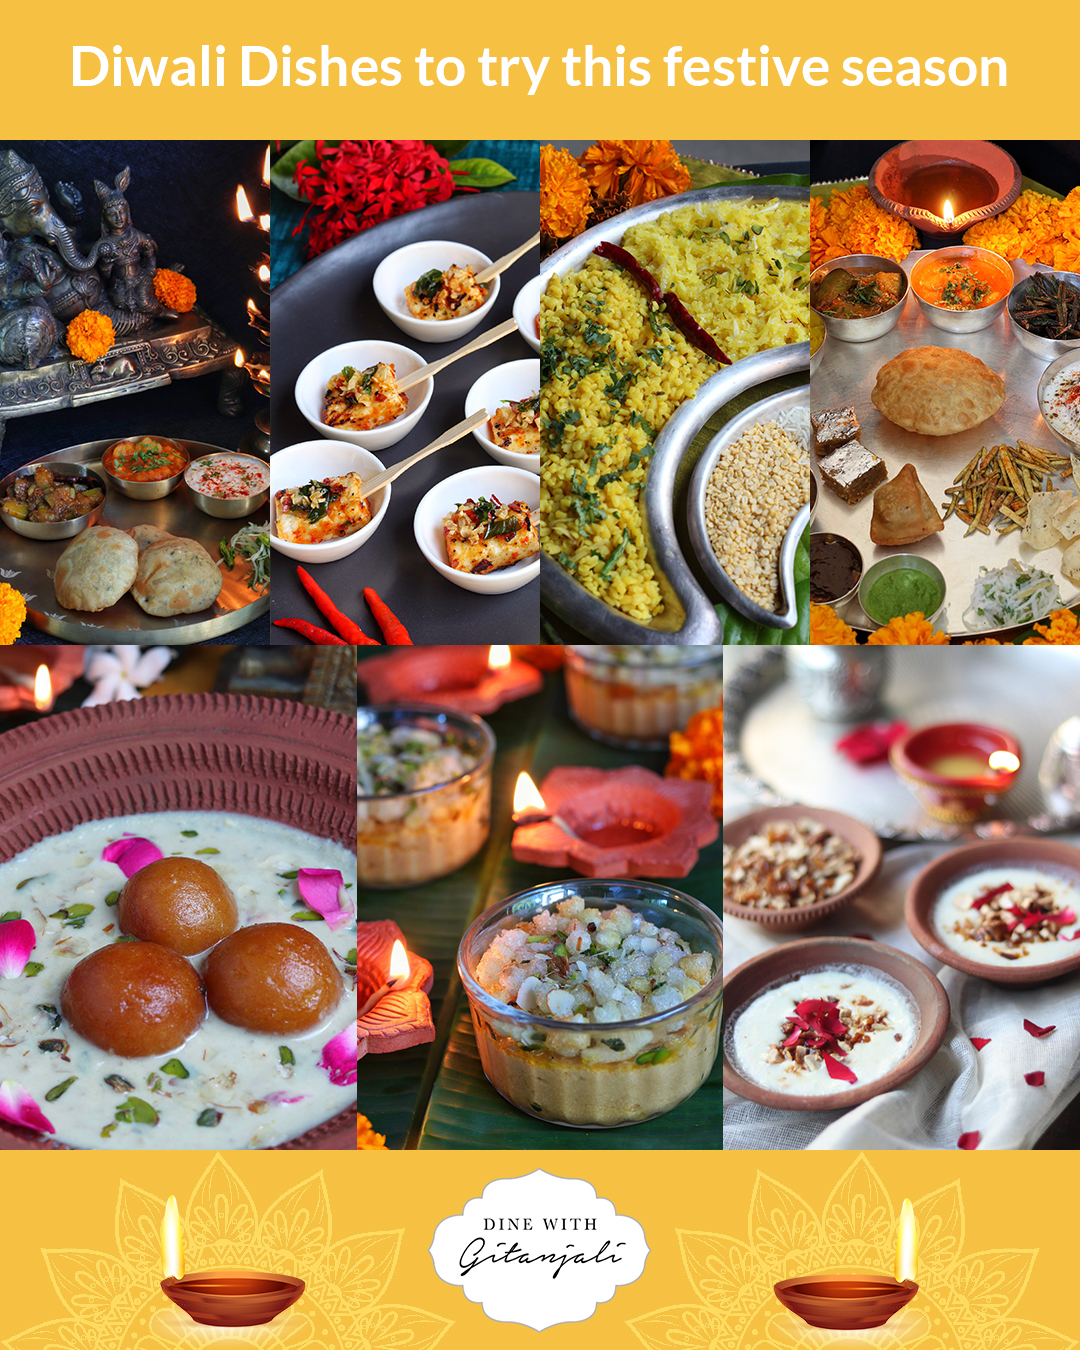 Diwali dishes